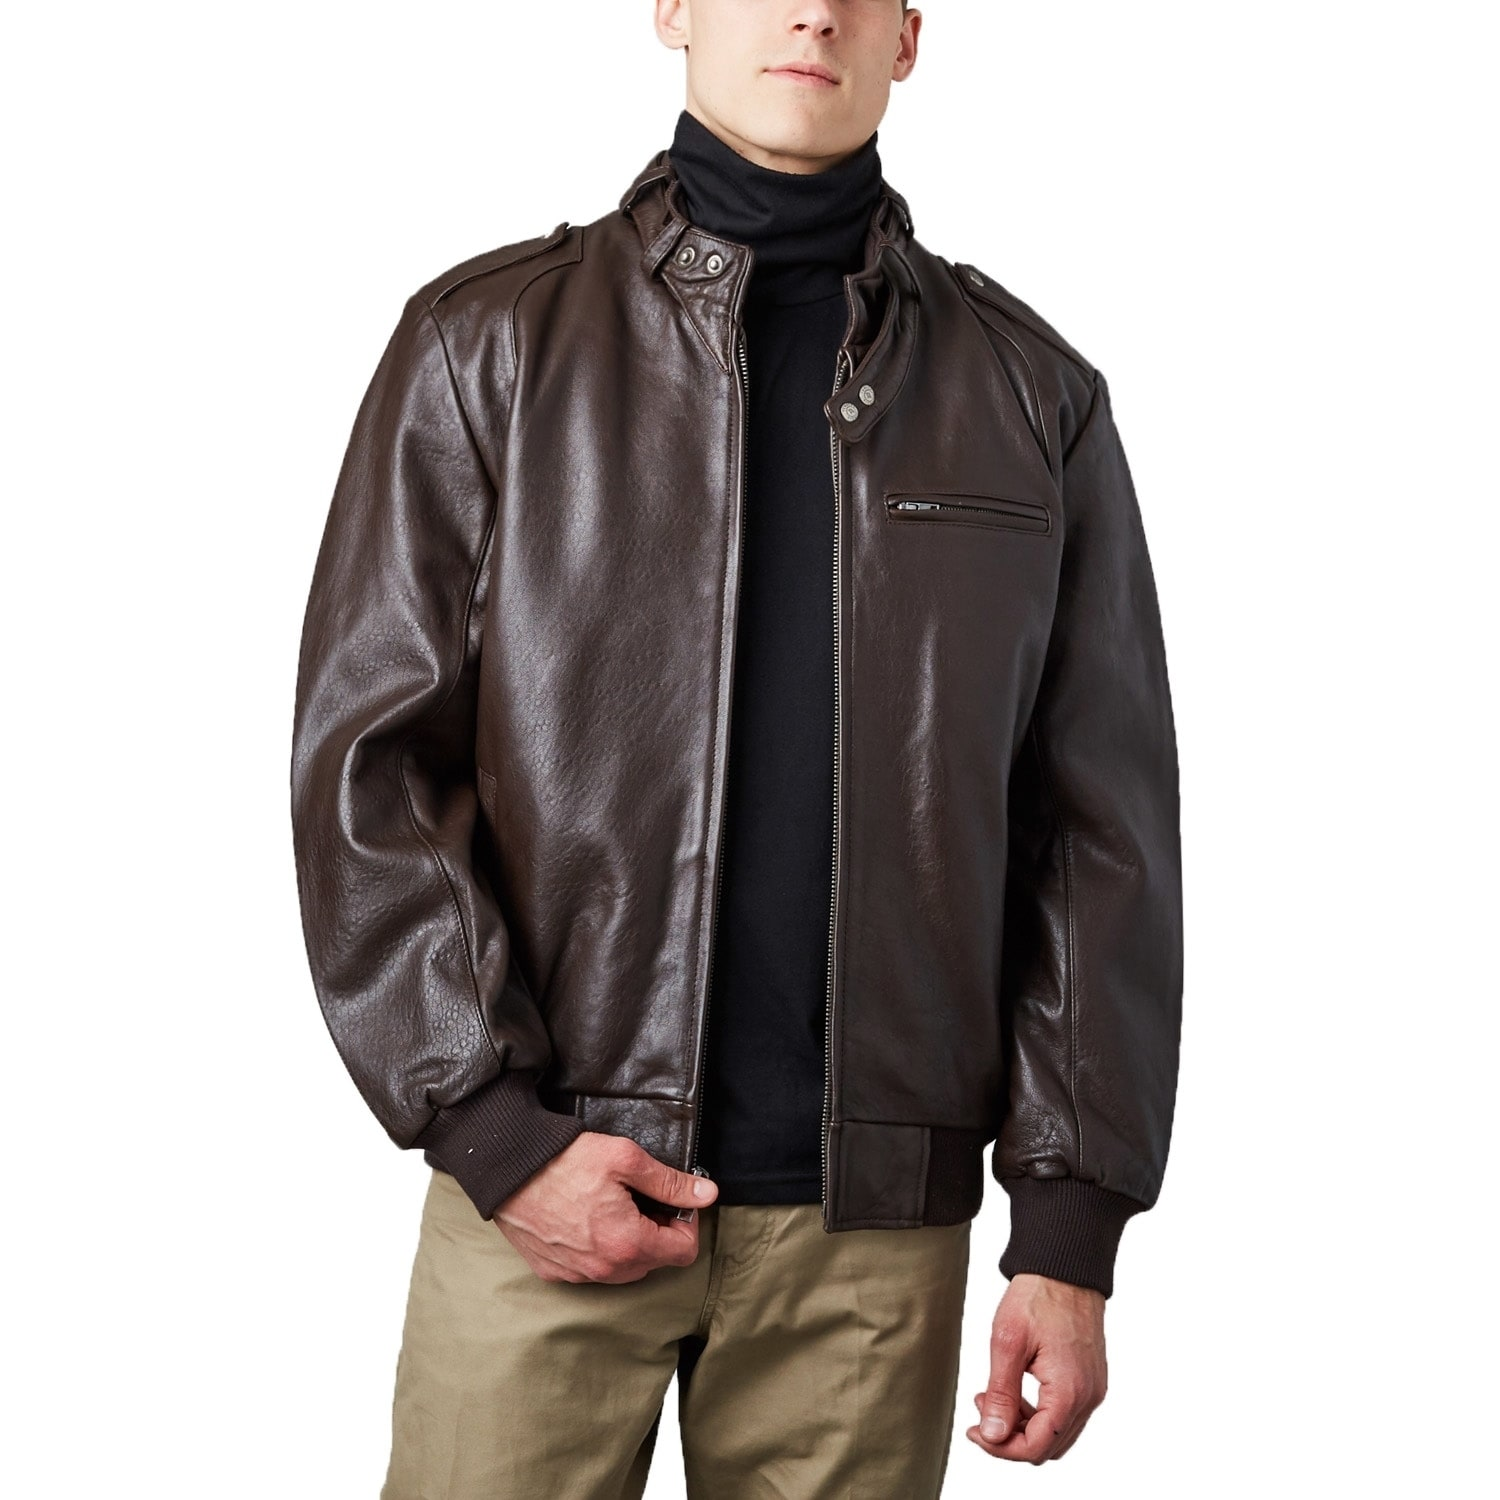 ff454282a Shop Men's Brown Lambskin Leather Bomber Jacket with Moto Collar ...